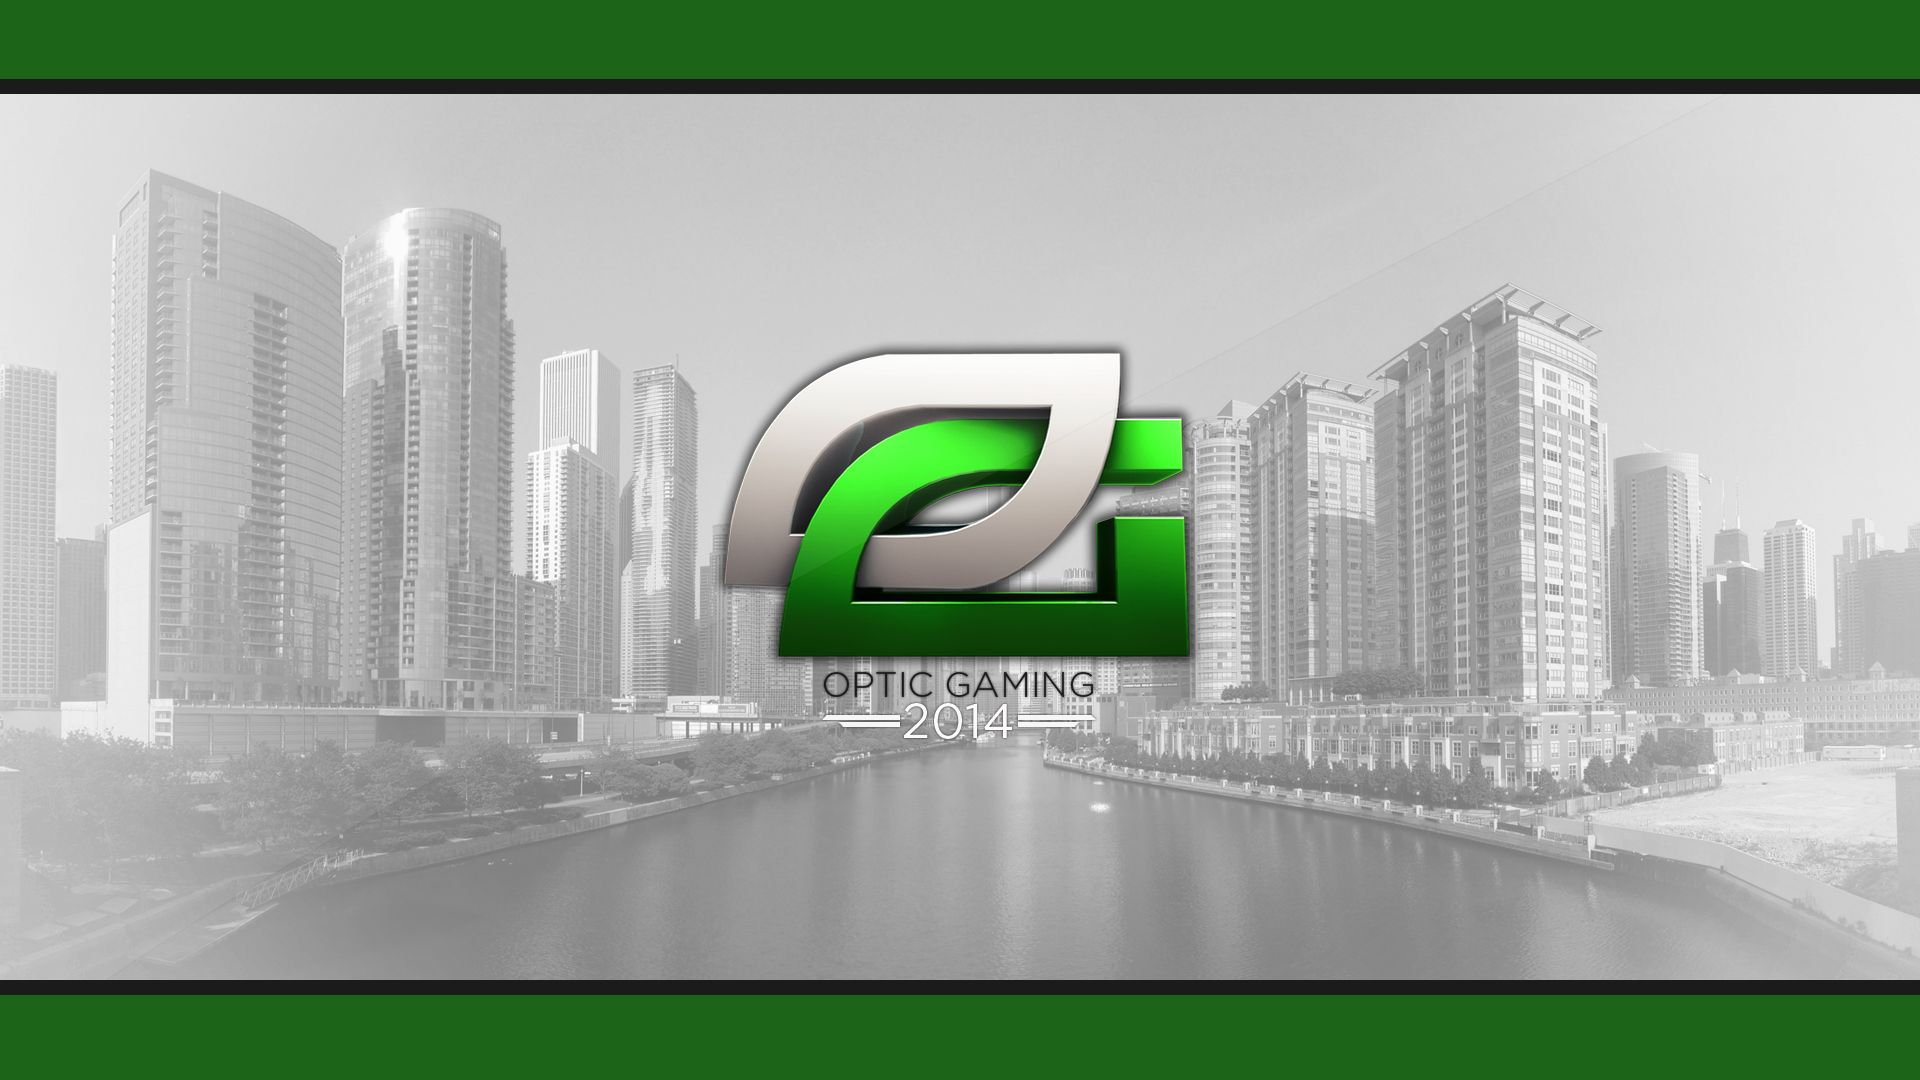 Optic Gaming wallpaper image